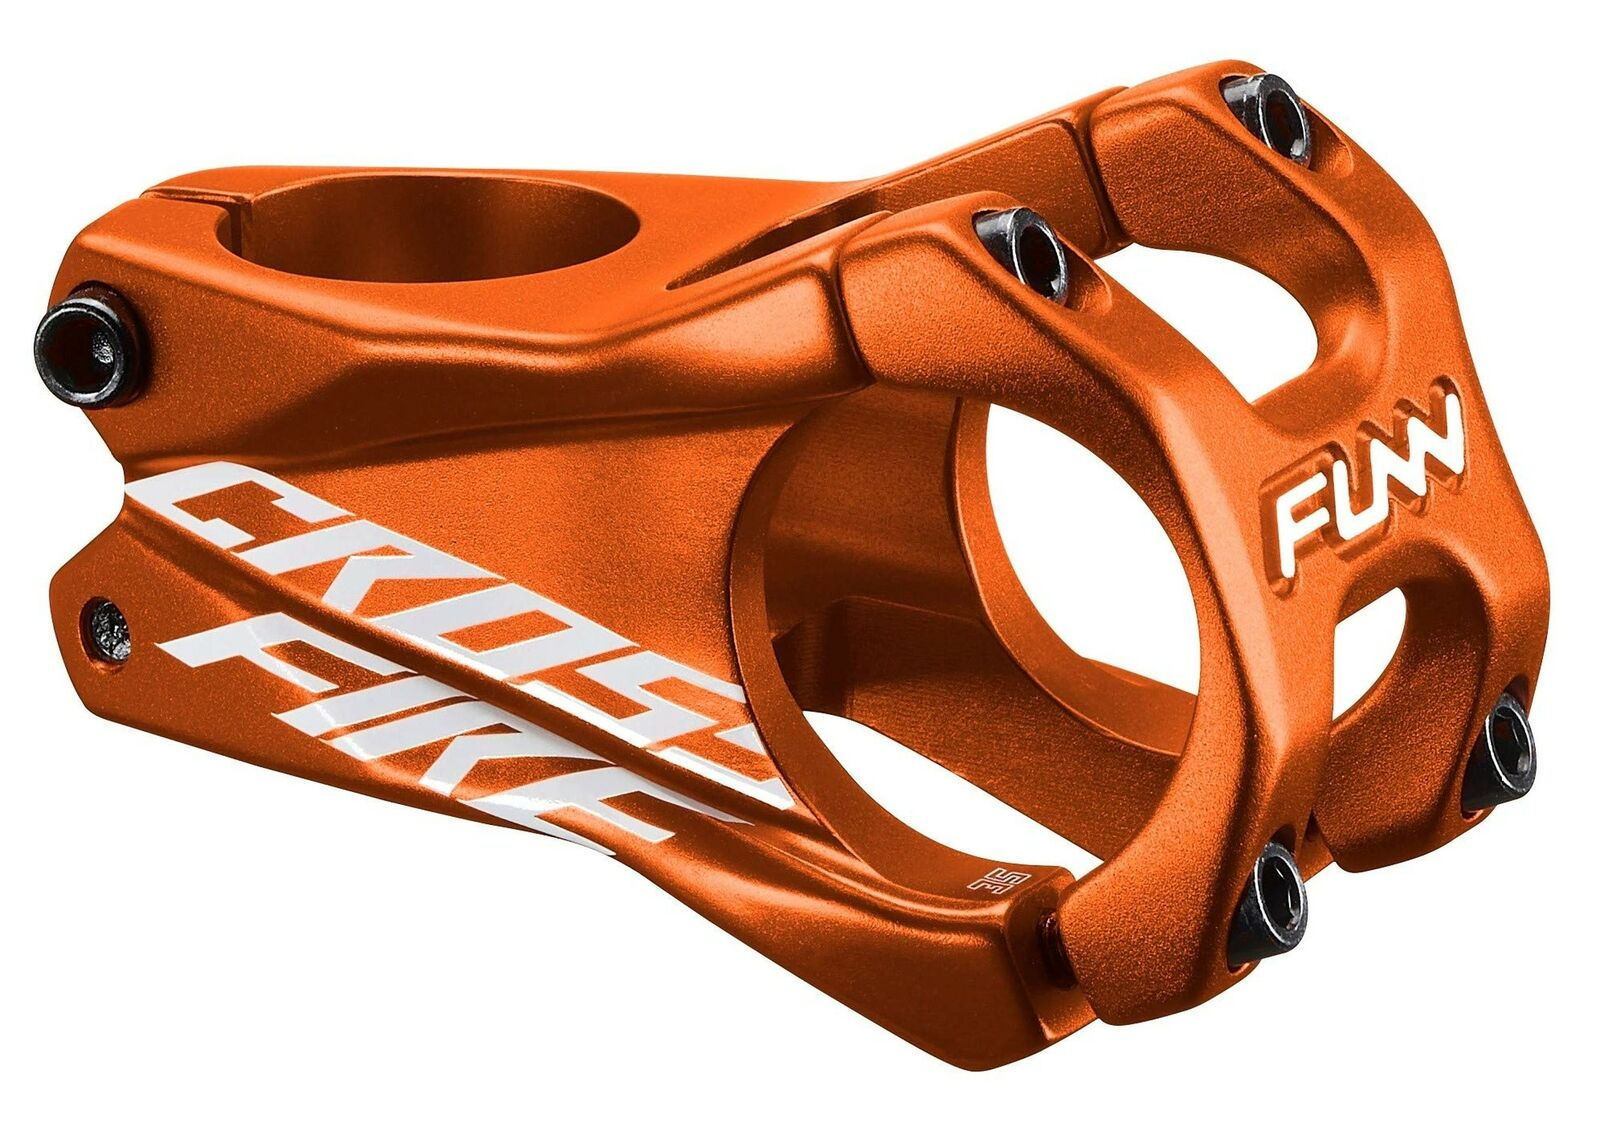 Funn Crossfire MTB Stem, Bar  Clamp 35mm (Length 50mm, orange)  come to choose your own sports style